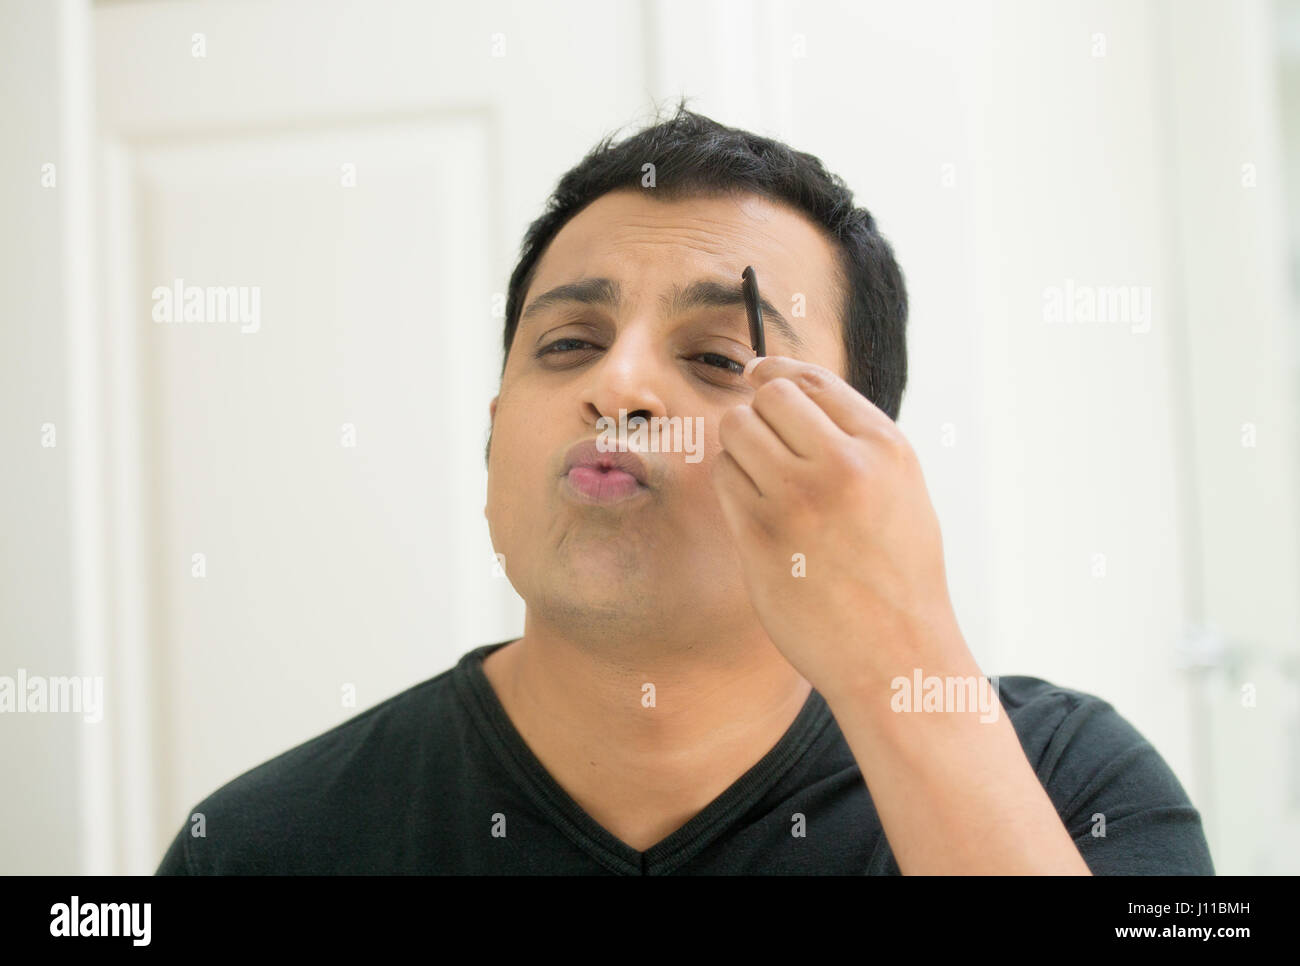 Closeup portrait, young handsome egotistical man in black t-shirt looking at mirror showing kisses and duck face, - Stock Image